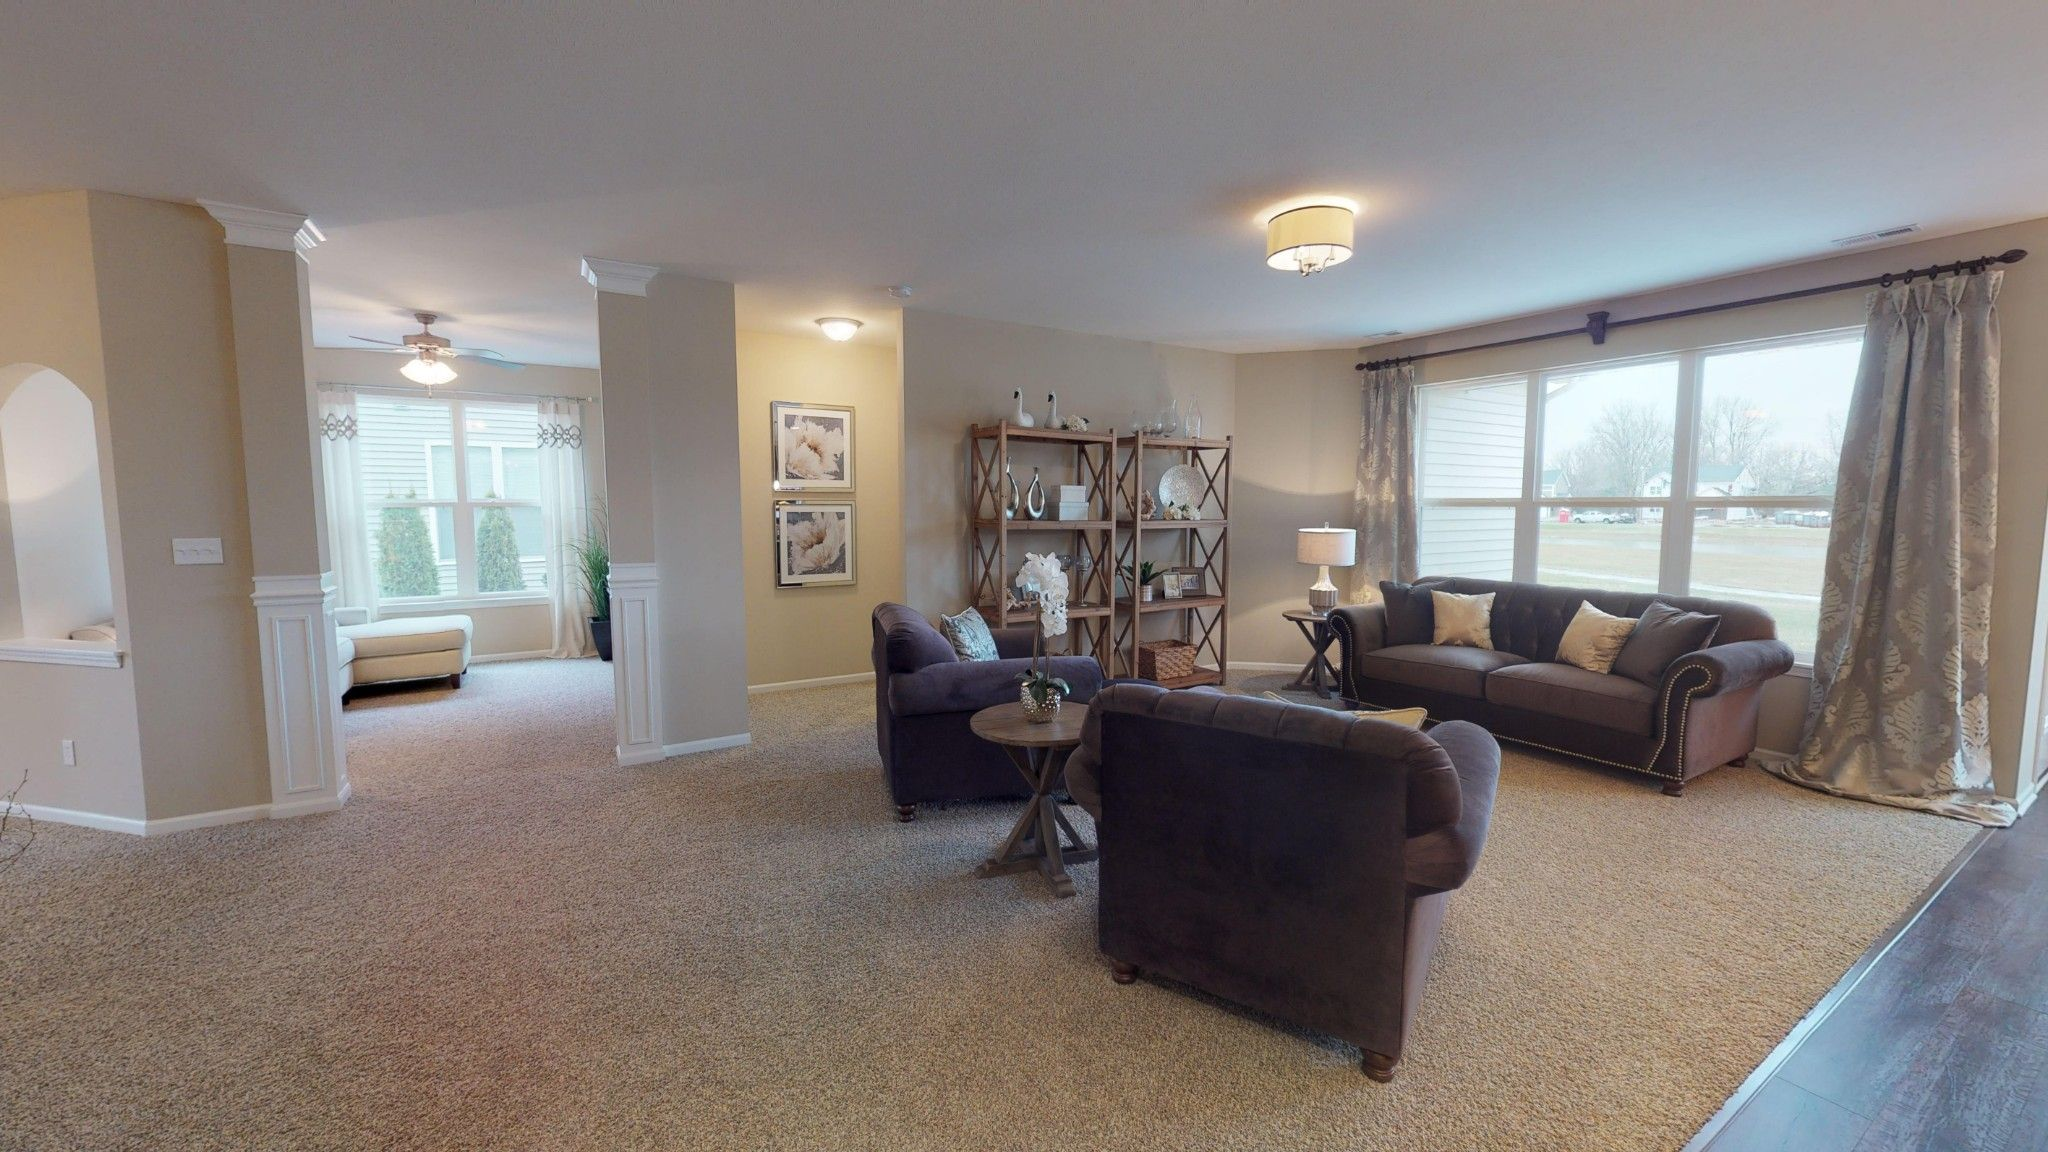 Living Area featured in the Nottingham By Olthof Homes in Gary, IN